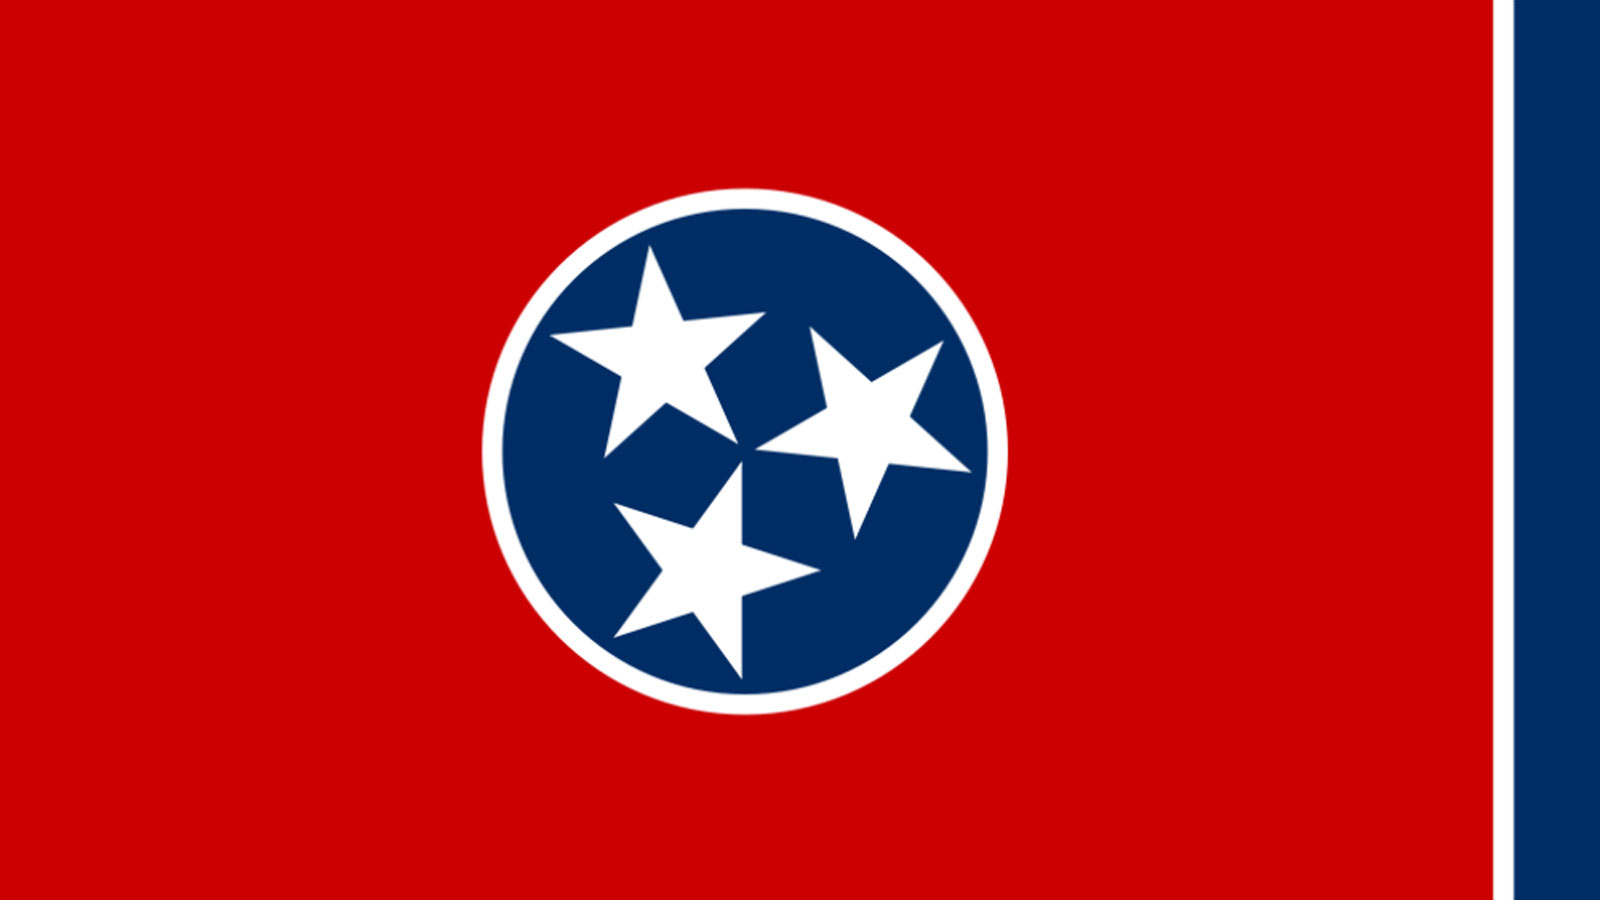 SHAMEFUL: Tennessee Gov. Bill Lee Signs Harmful Anti-LGBTQ Child Welfare Bill